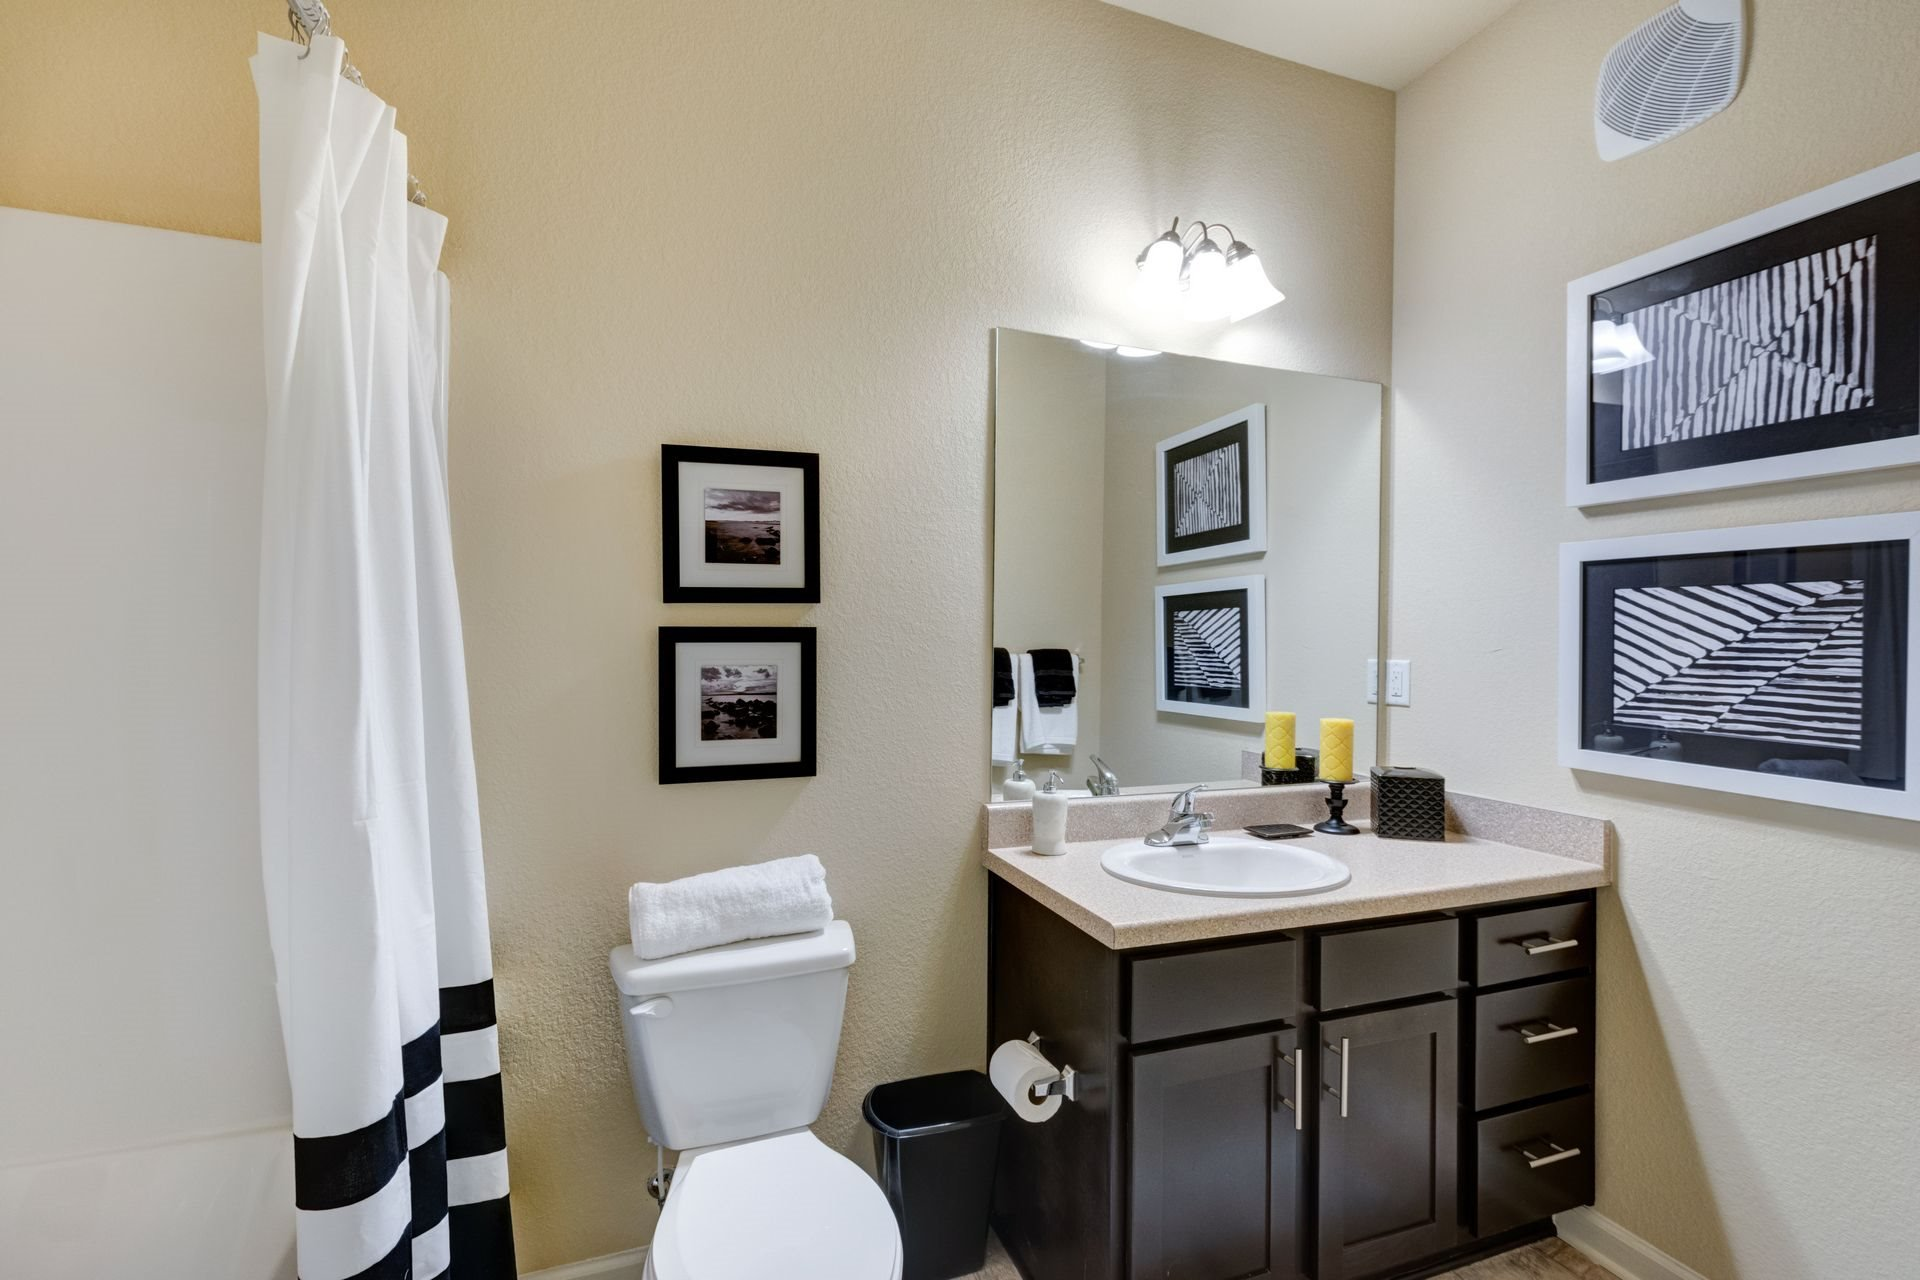 Spacious Bathrooms at Ultris Patriot Park, Fayetteville, NC,28311